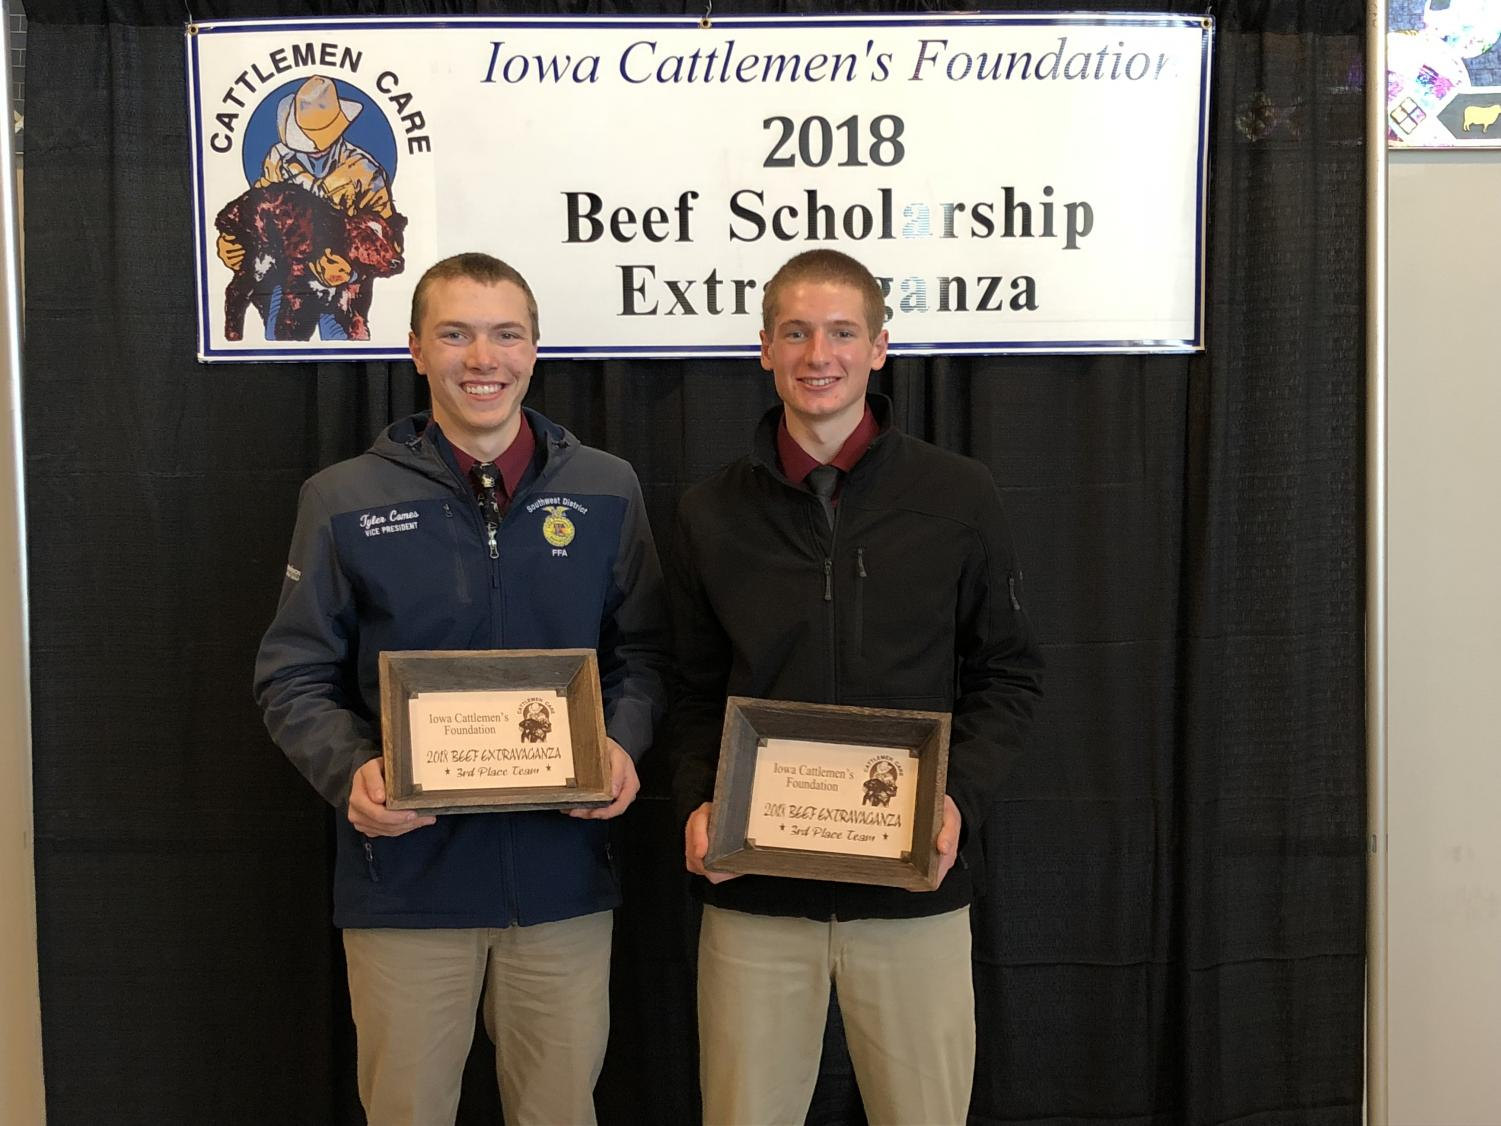 WIDE SMILES- Seniors Tyler Comes and Nathan Behrends proudly show their plaques from the contest. Comes and Behrends earned third place.